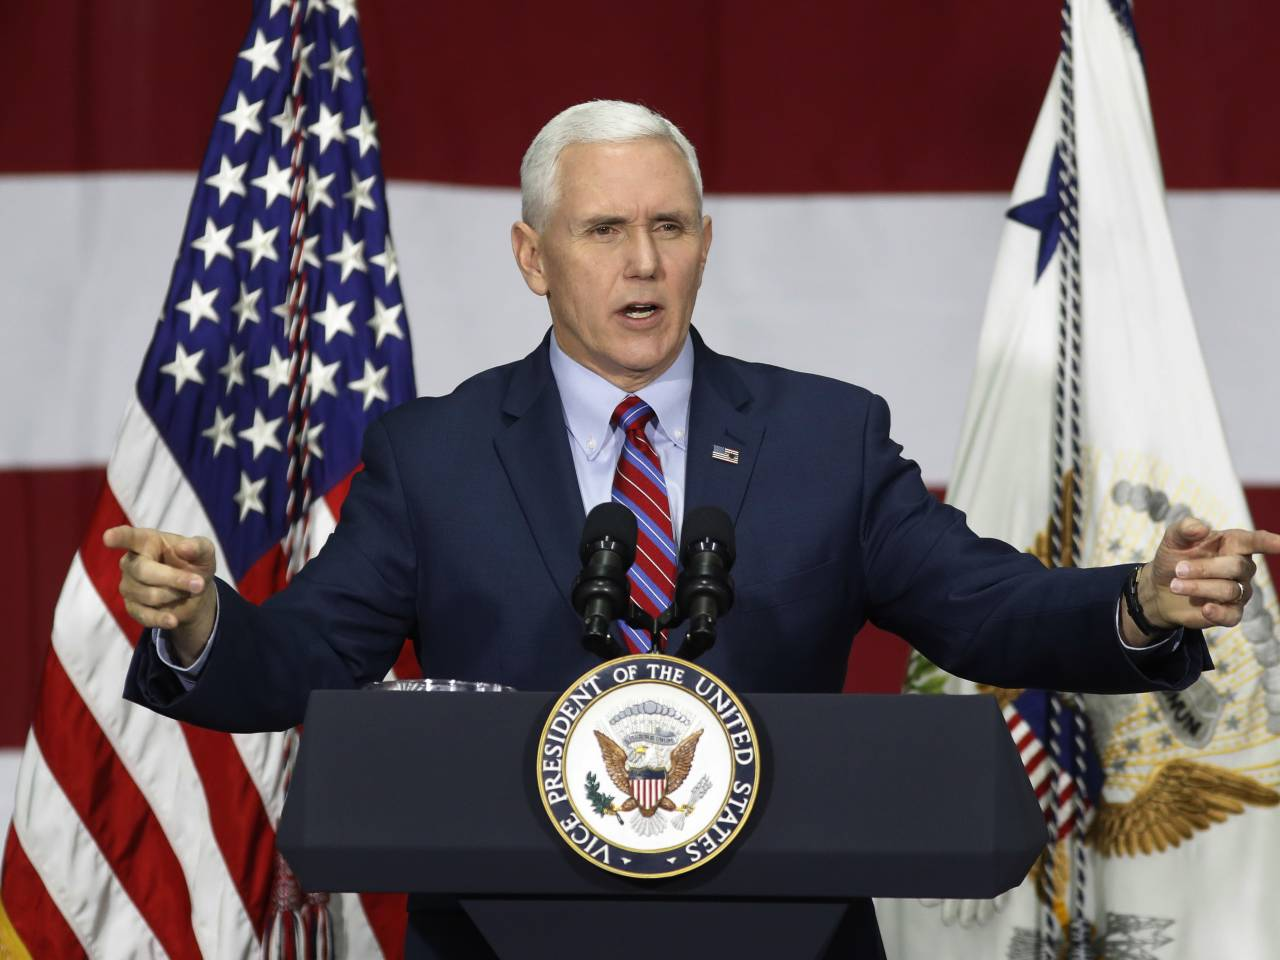 Pence on Trump's Tweets, Repealing and Replacing ObamaCare